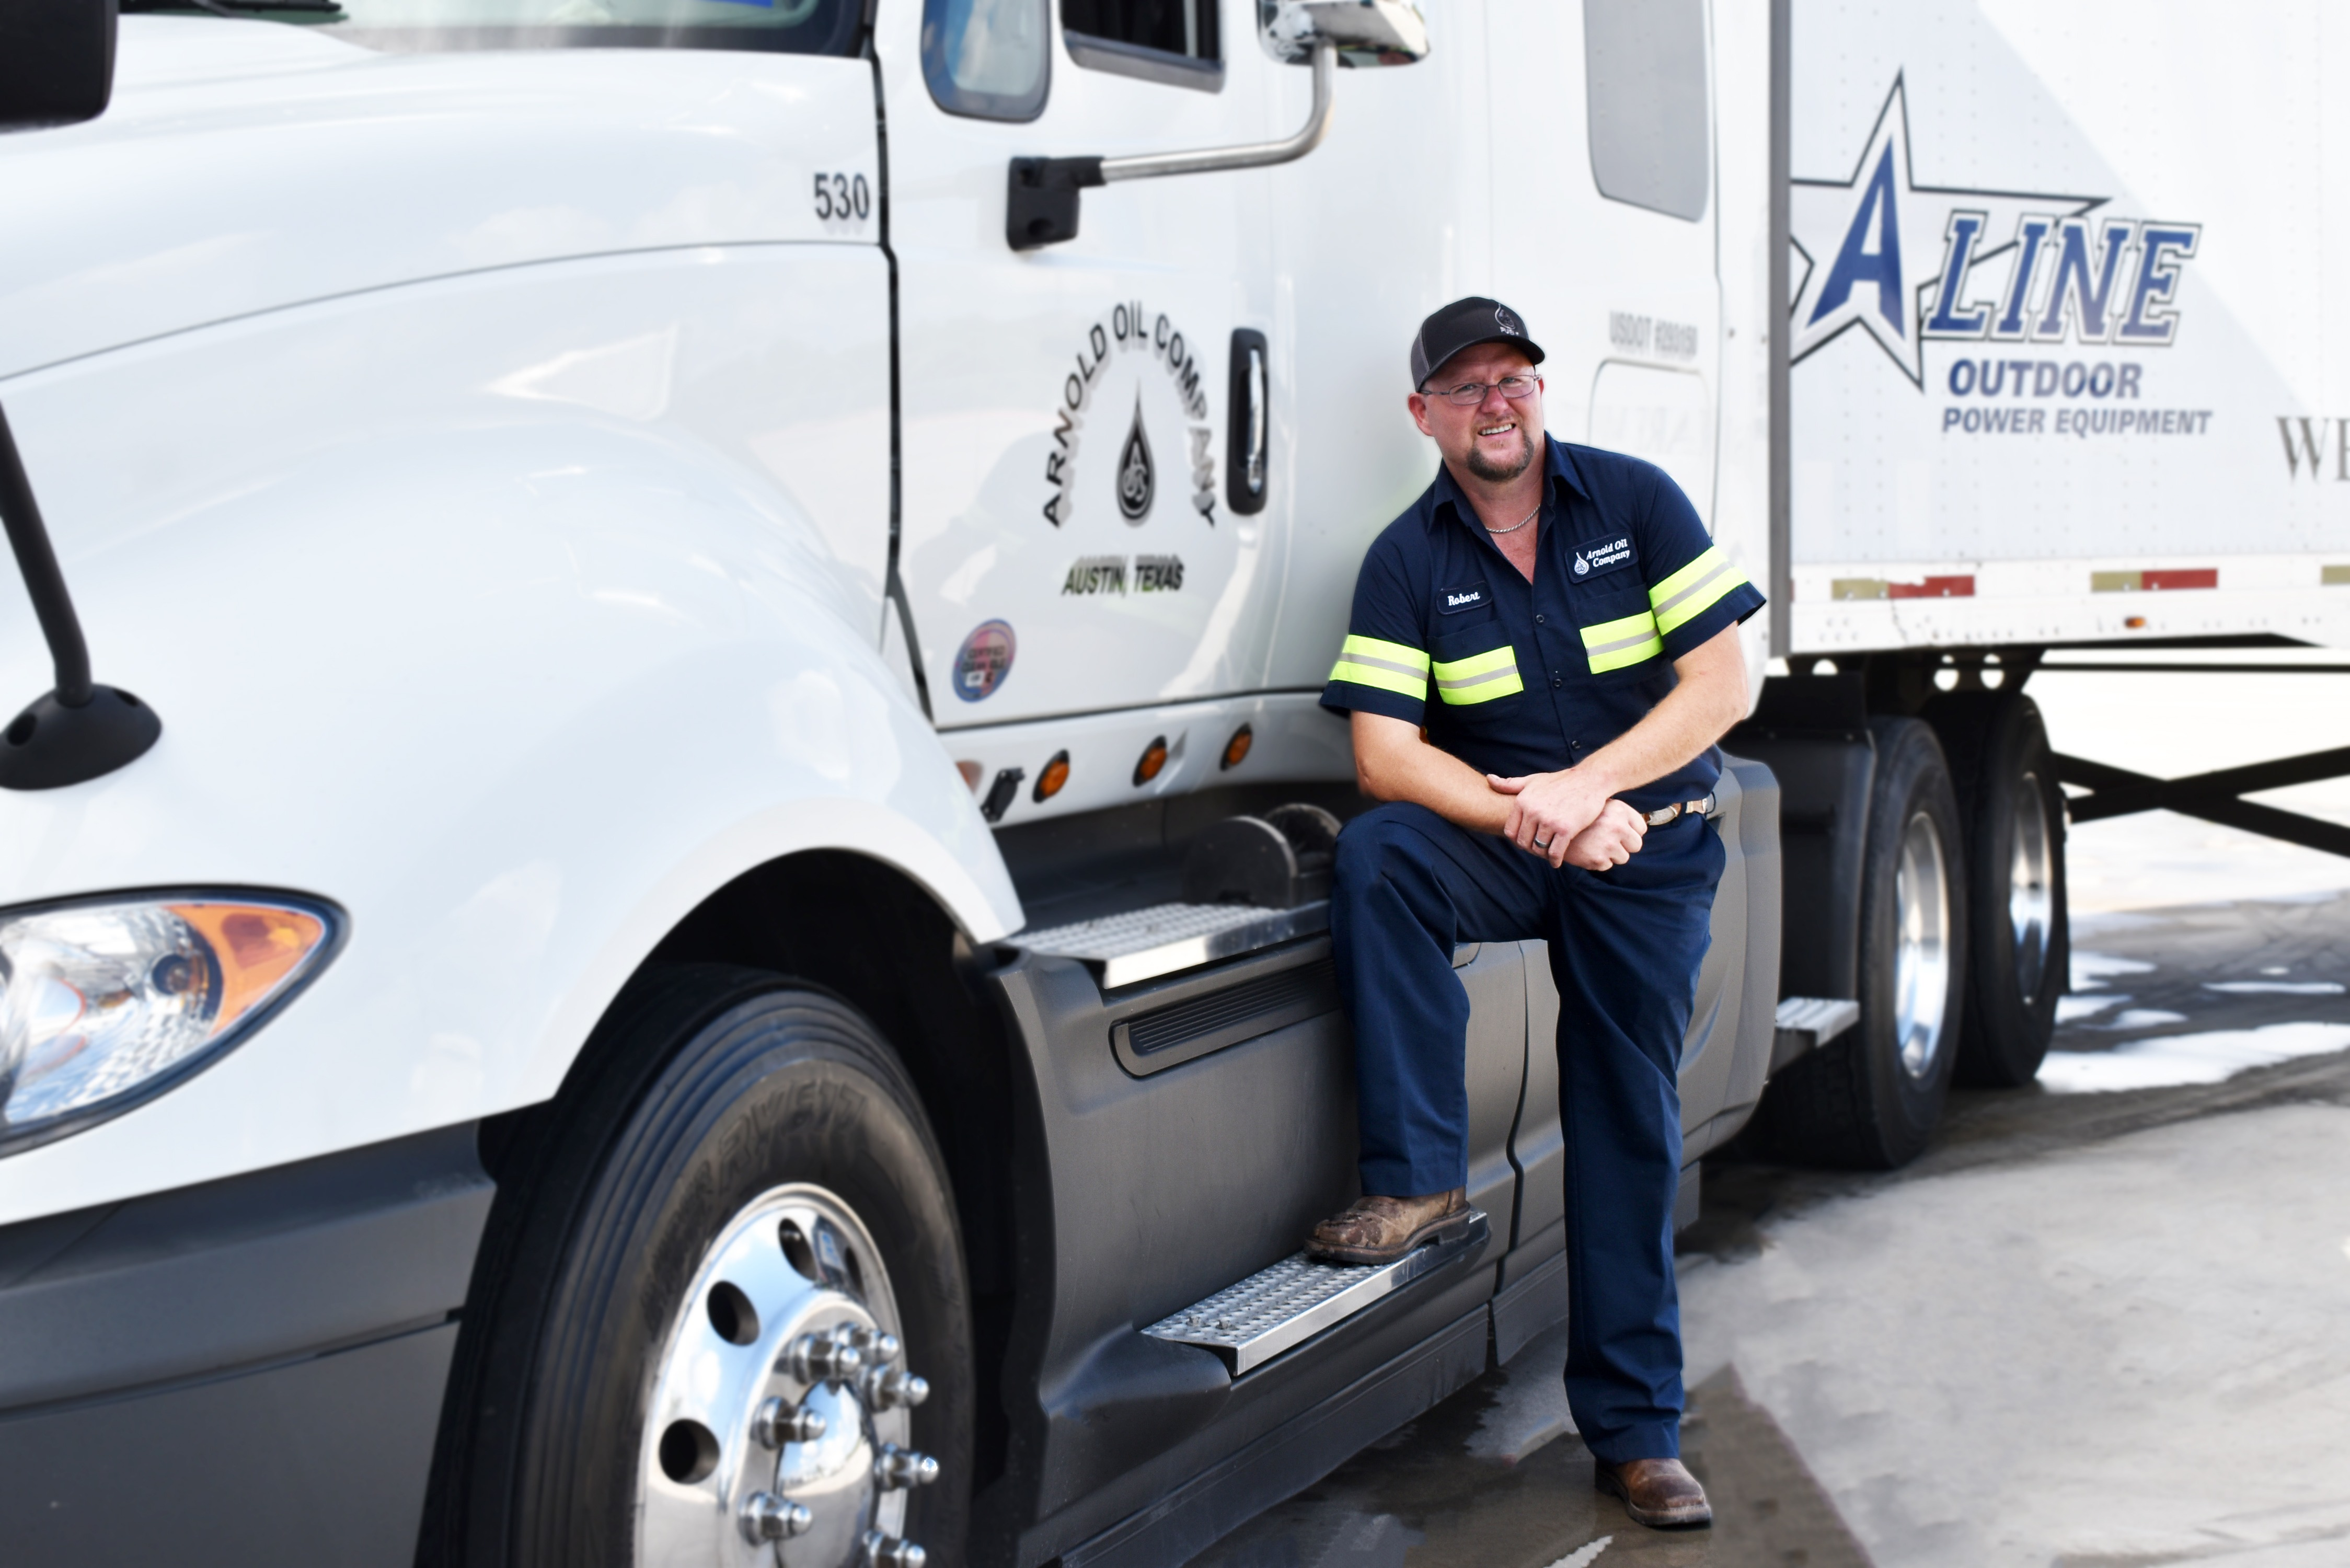 Truck Driving Jobs Are Great Career For the Right Person